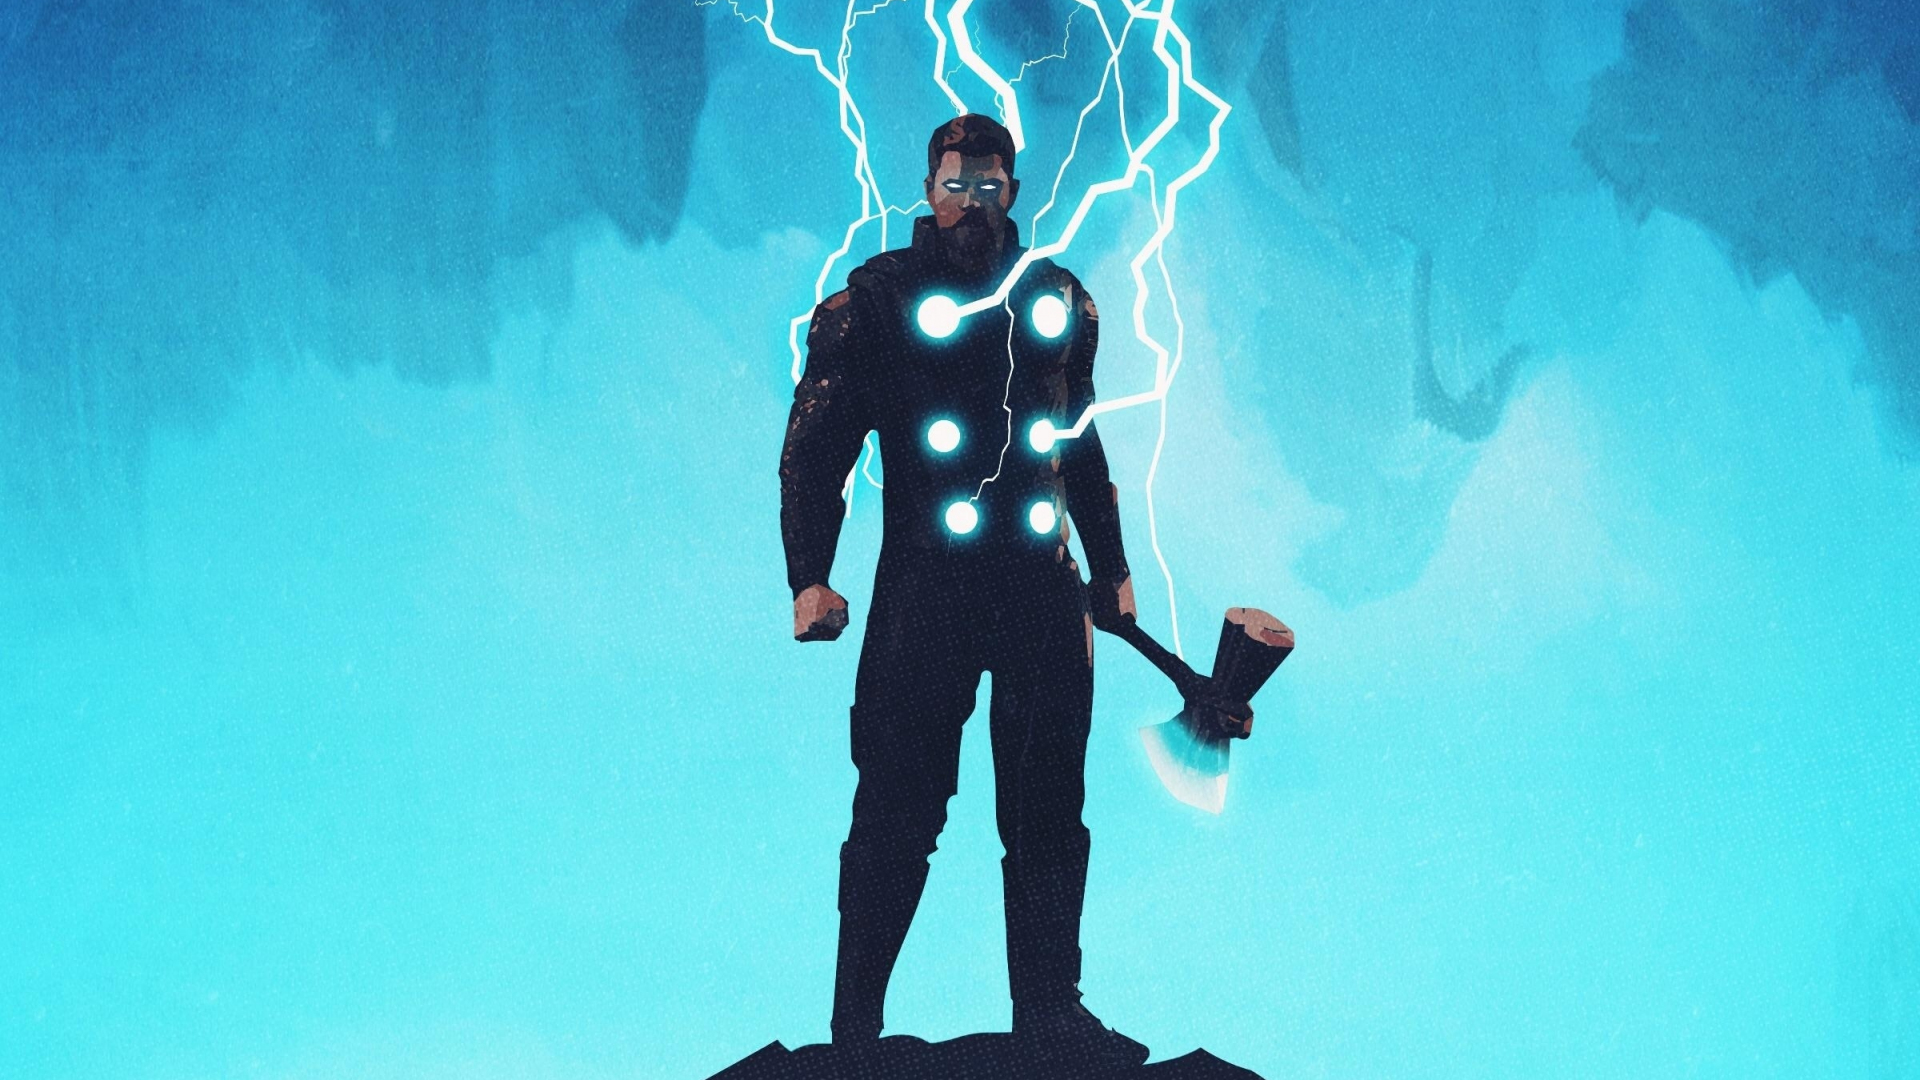 Download 1920x1080 wallpaper thor artwork lightning god full hd hdtv fhd 1080p 1920x1080 - 1366x768 is 720p or 1080p ...